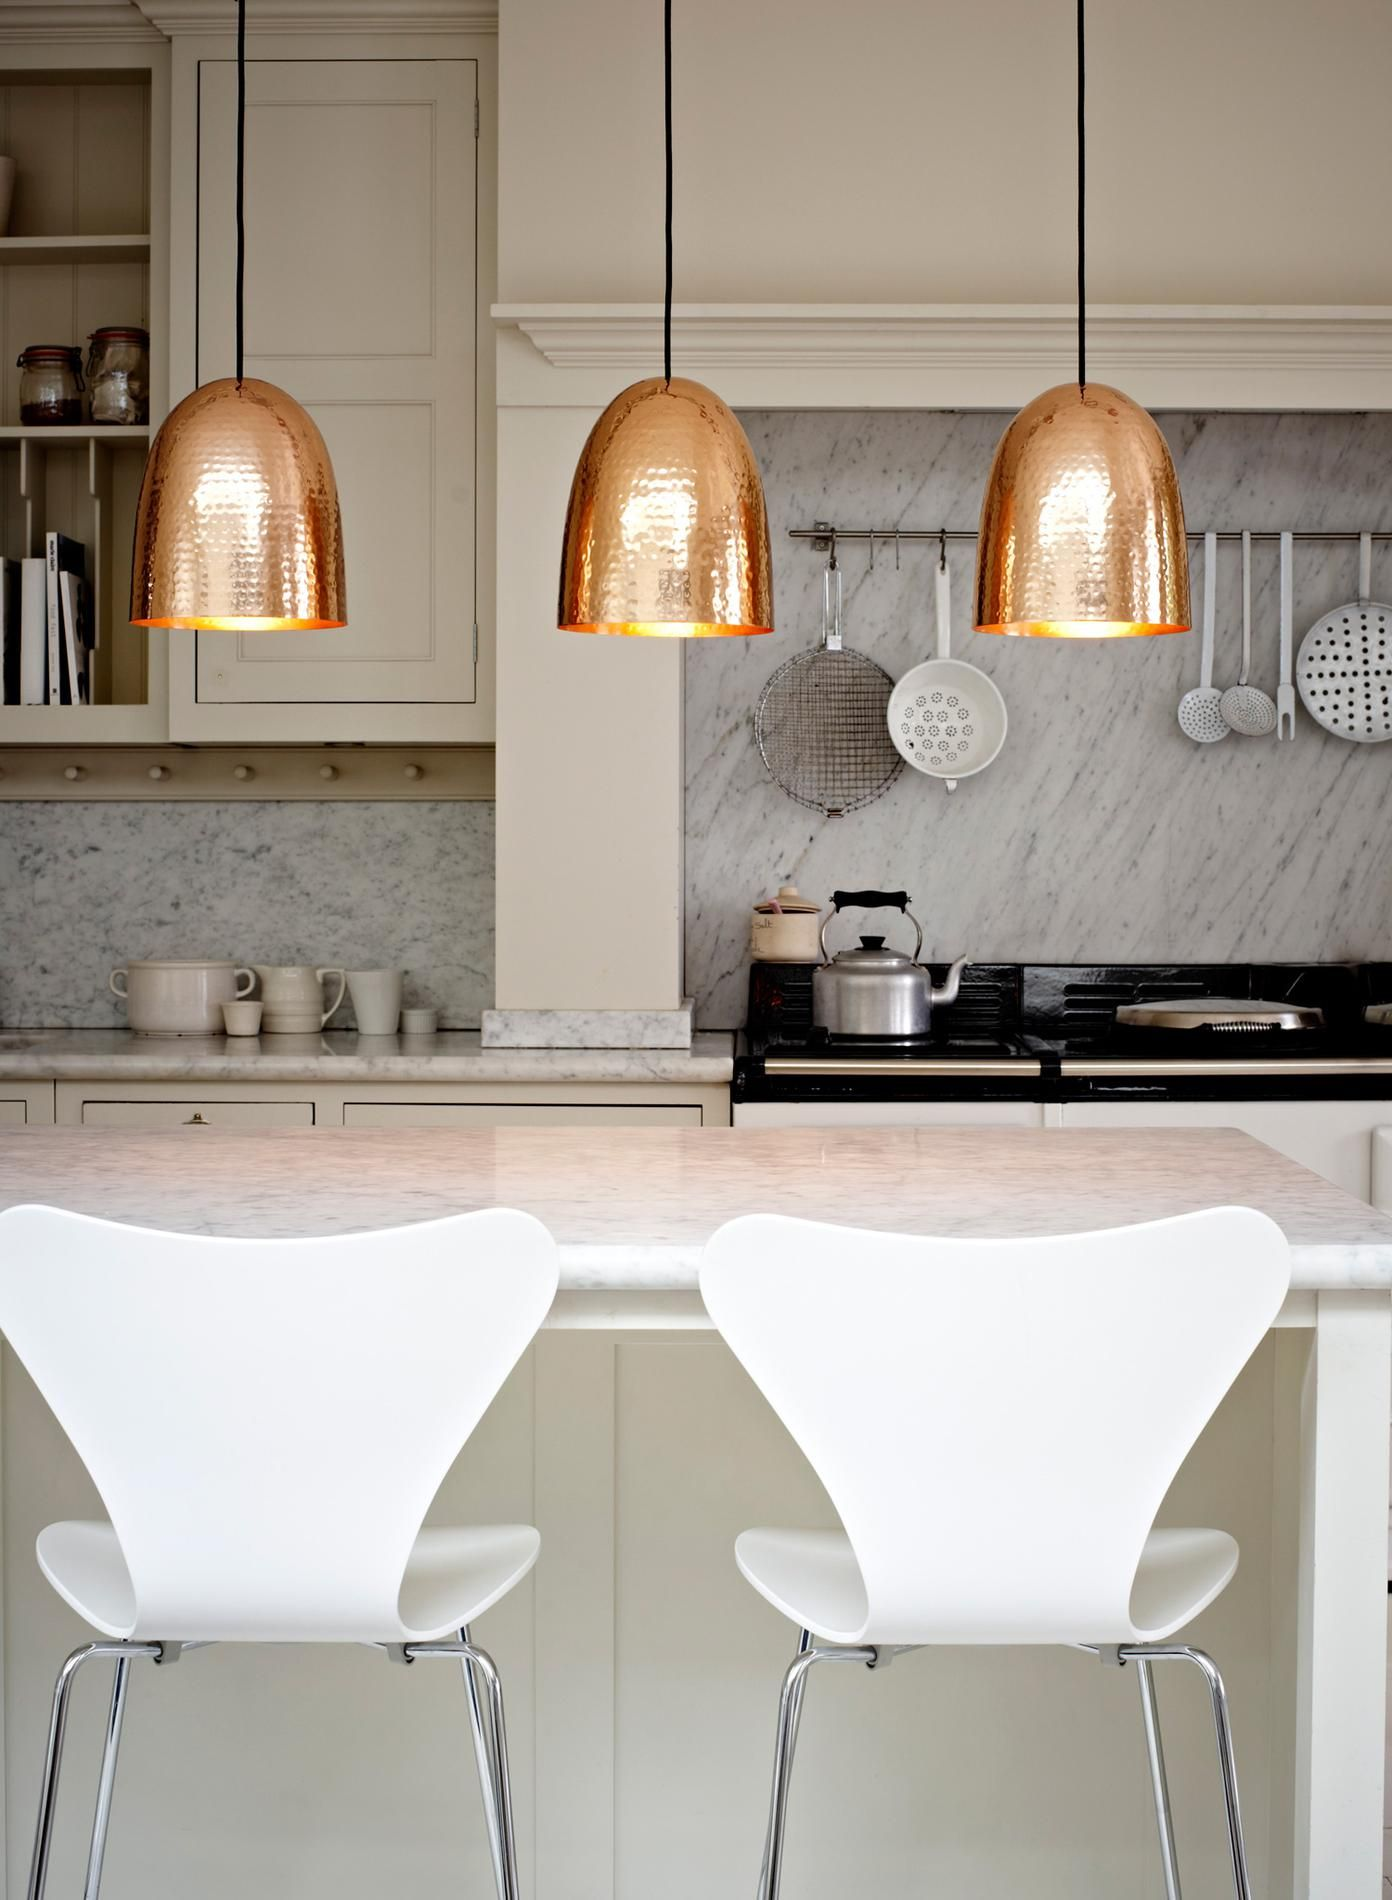 Examples Of Copper Pendant Lighting For Your Home - Buy kitchen pendant lights